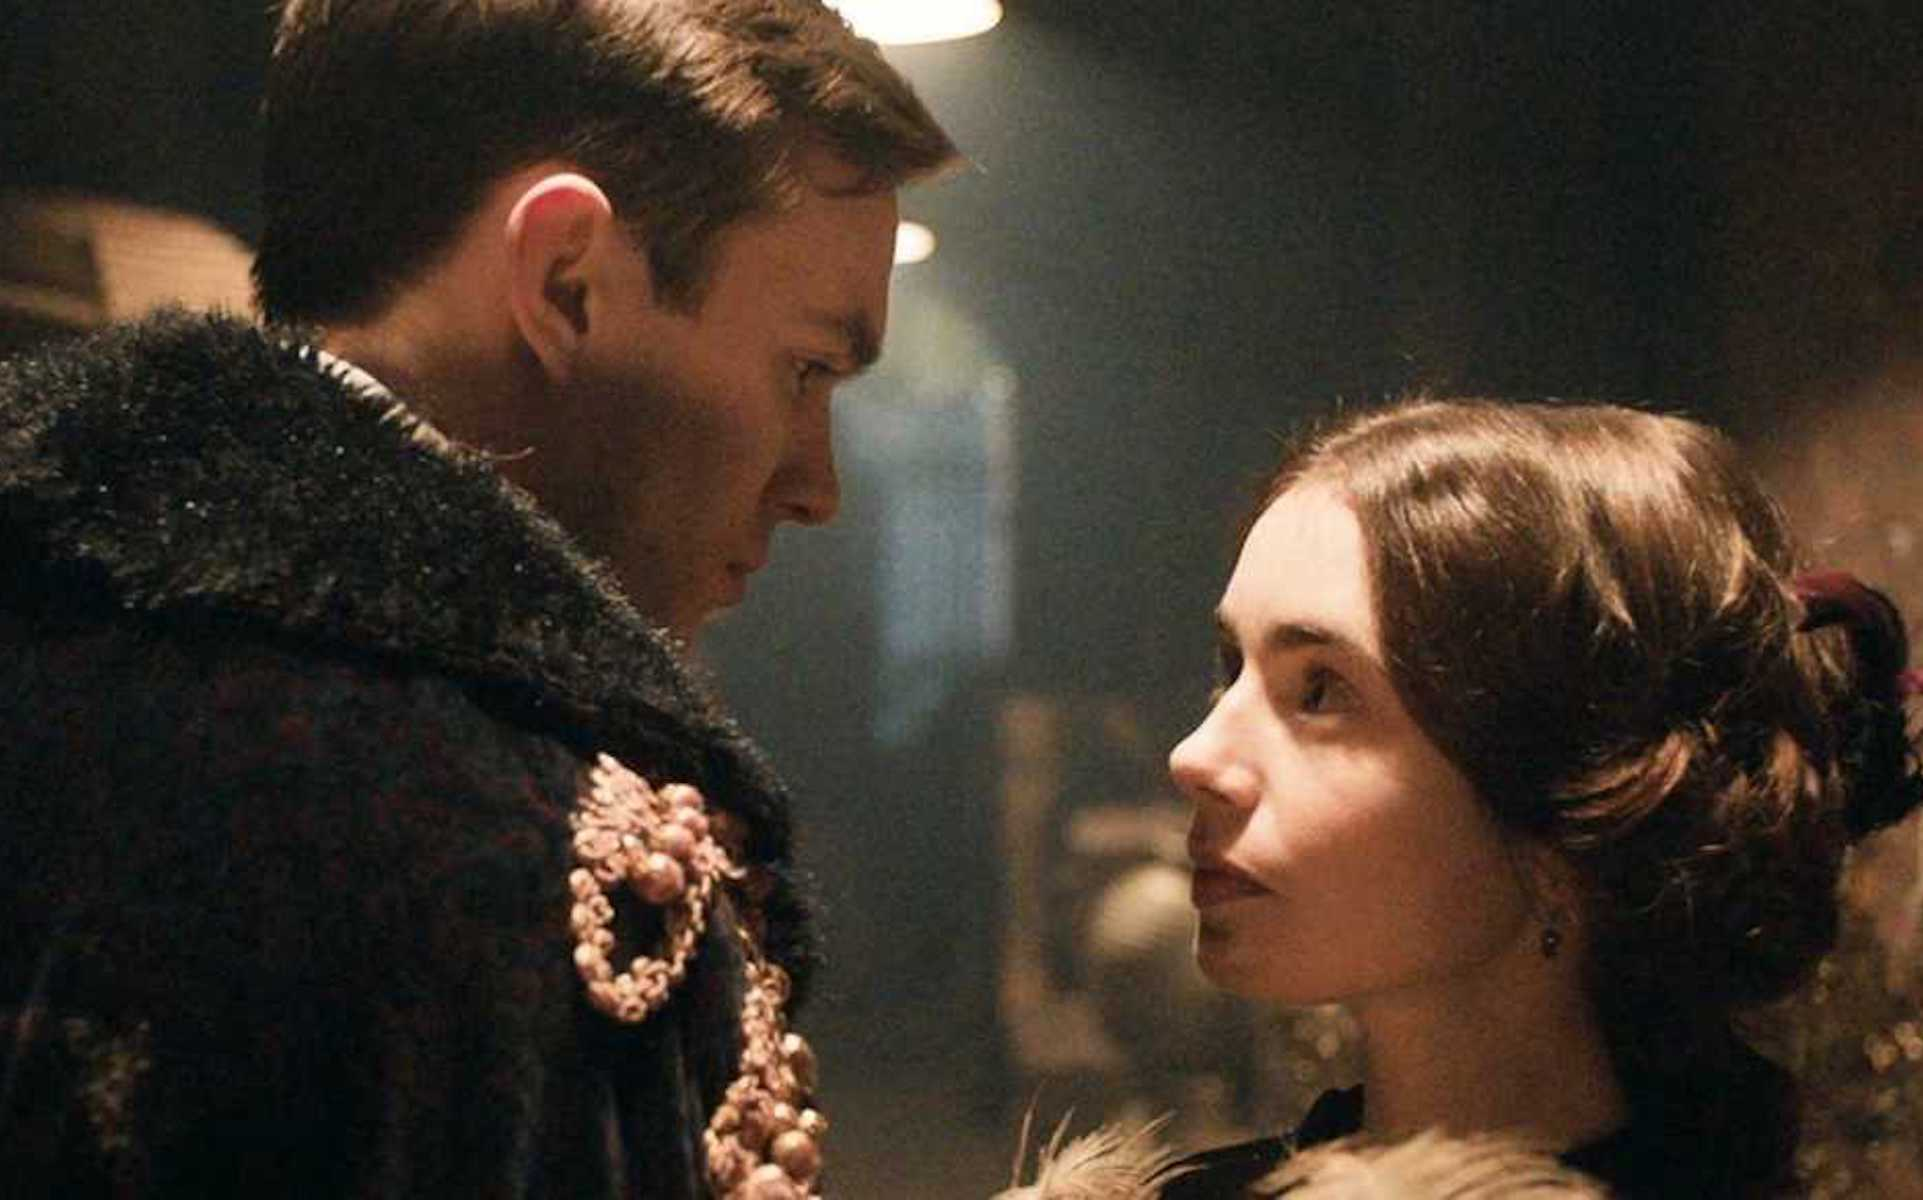 Movie Poster 2019: Nicholas Hoult Creates Middle-Earth In The 'Tolkien' Teaser